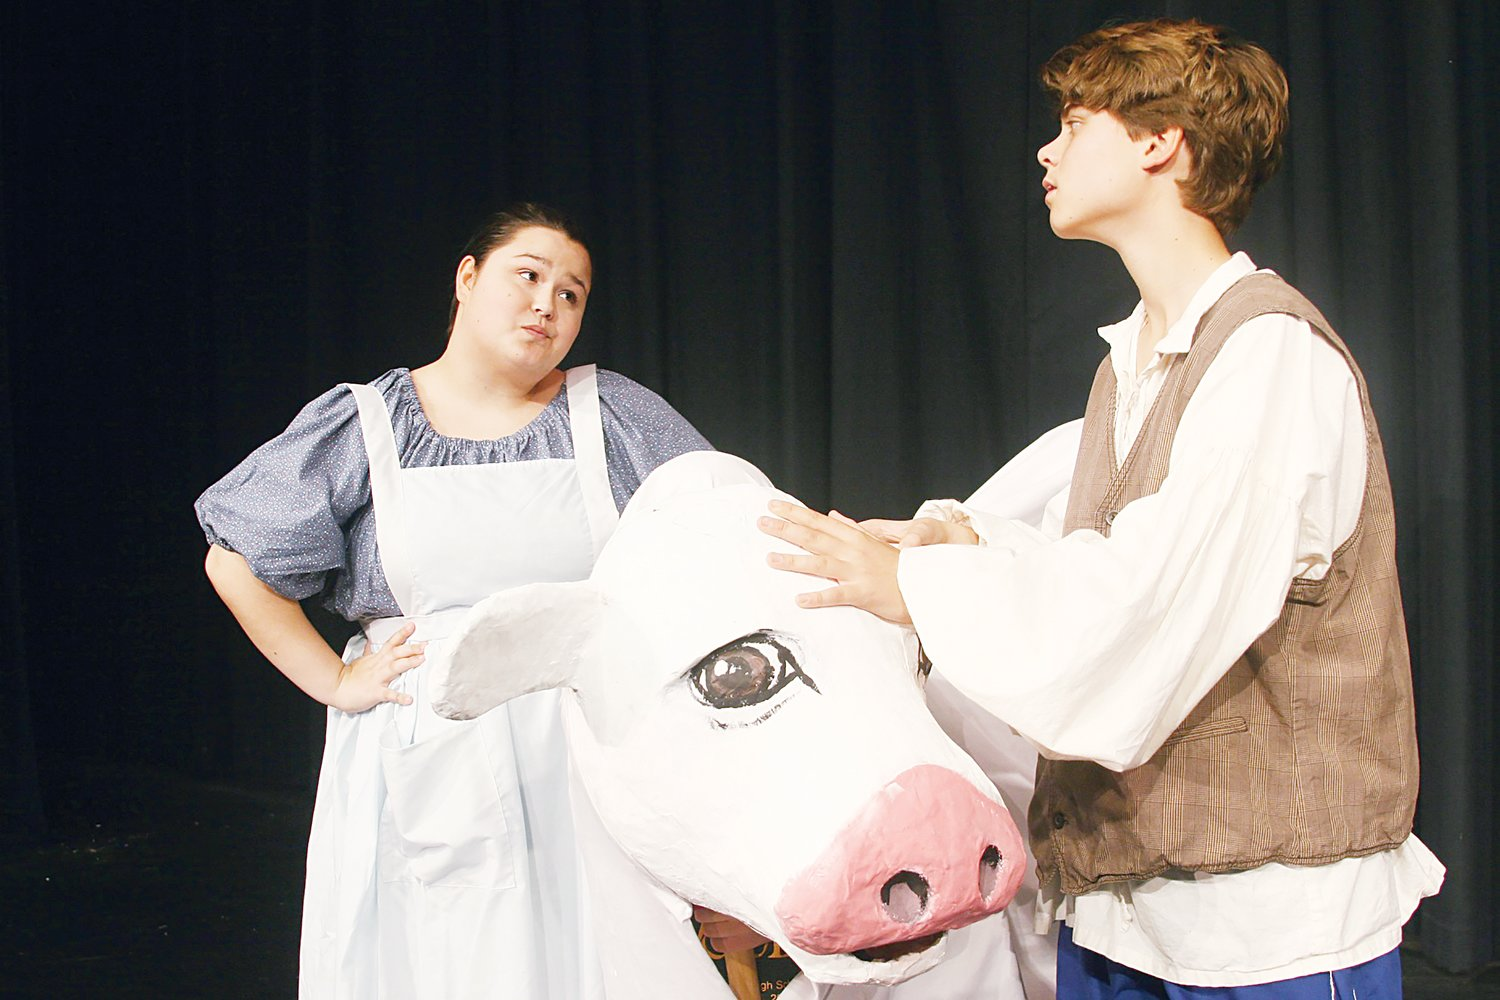 Jack (Buck Thornton) pleads with his mother (Laci Burt) not to sell his beloved cow, Milky White, which is a character animated by puppeteers Calvin Conroy and Manuel Mata and designed and created by Jordan-Matthews artists.